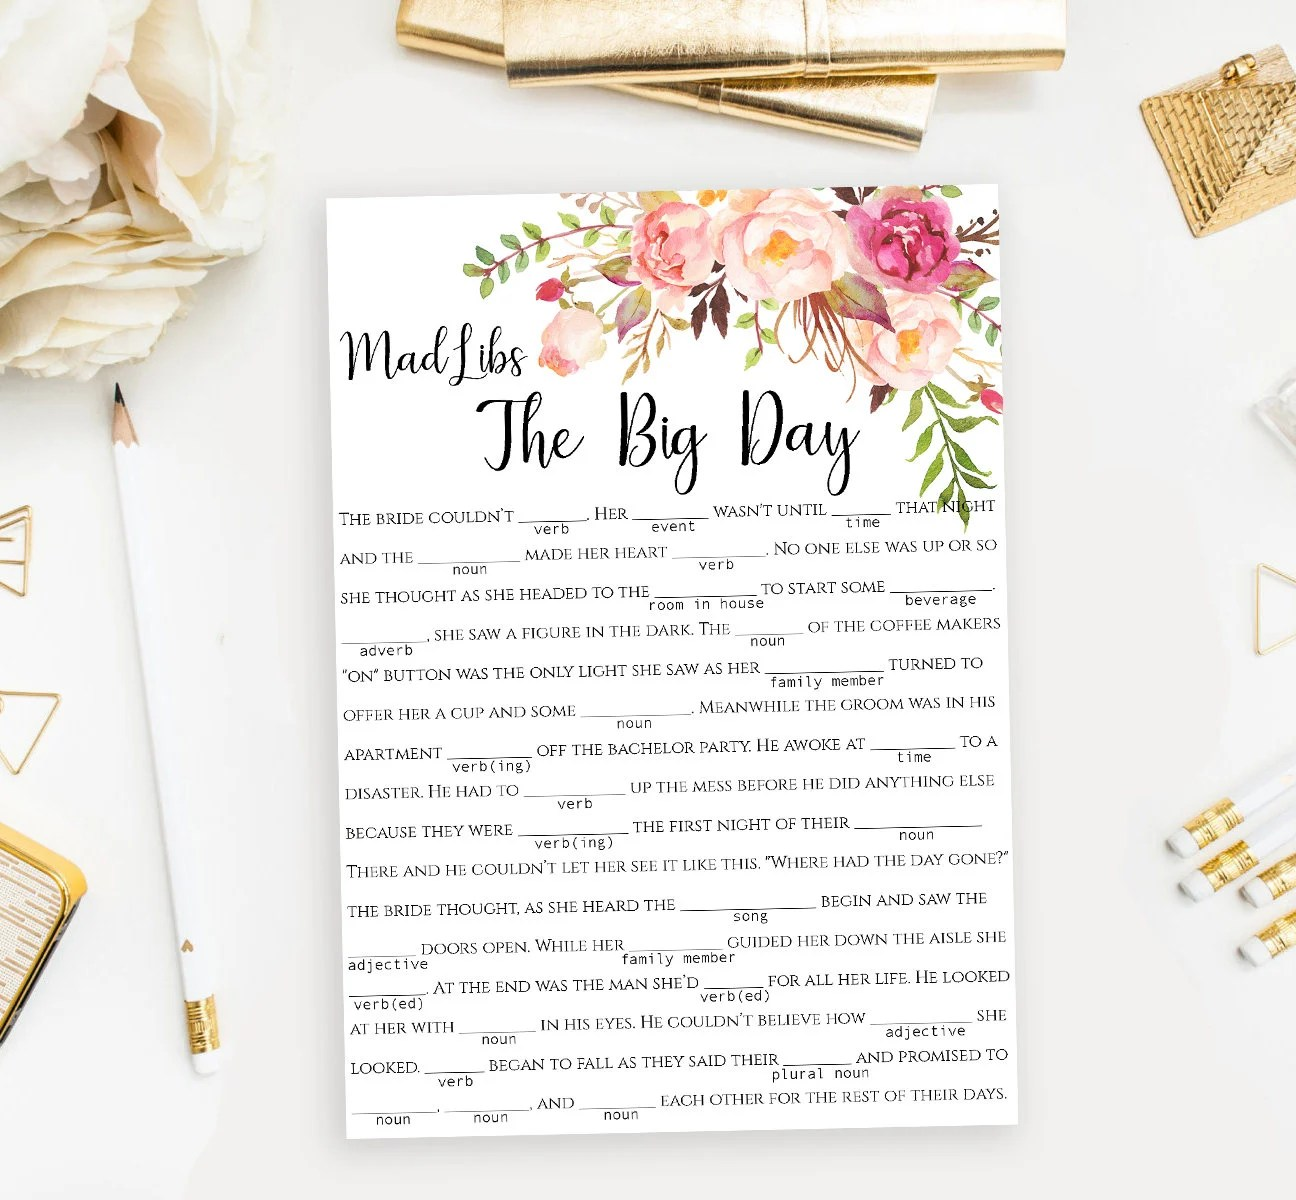 Wedding Mad Libs Story Game Printable Funny The Big